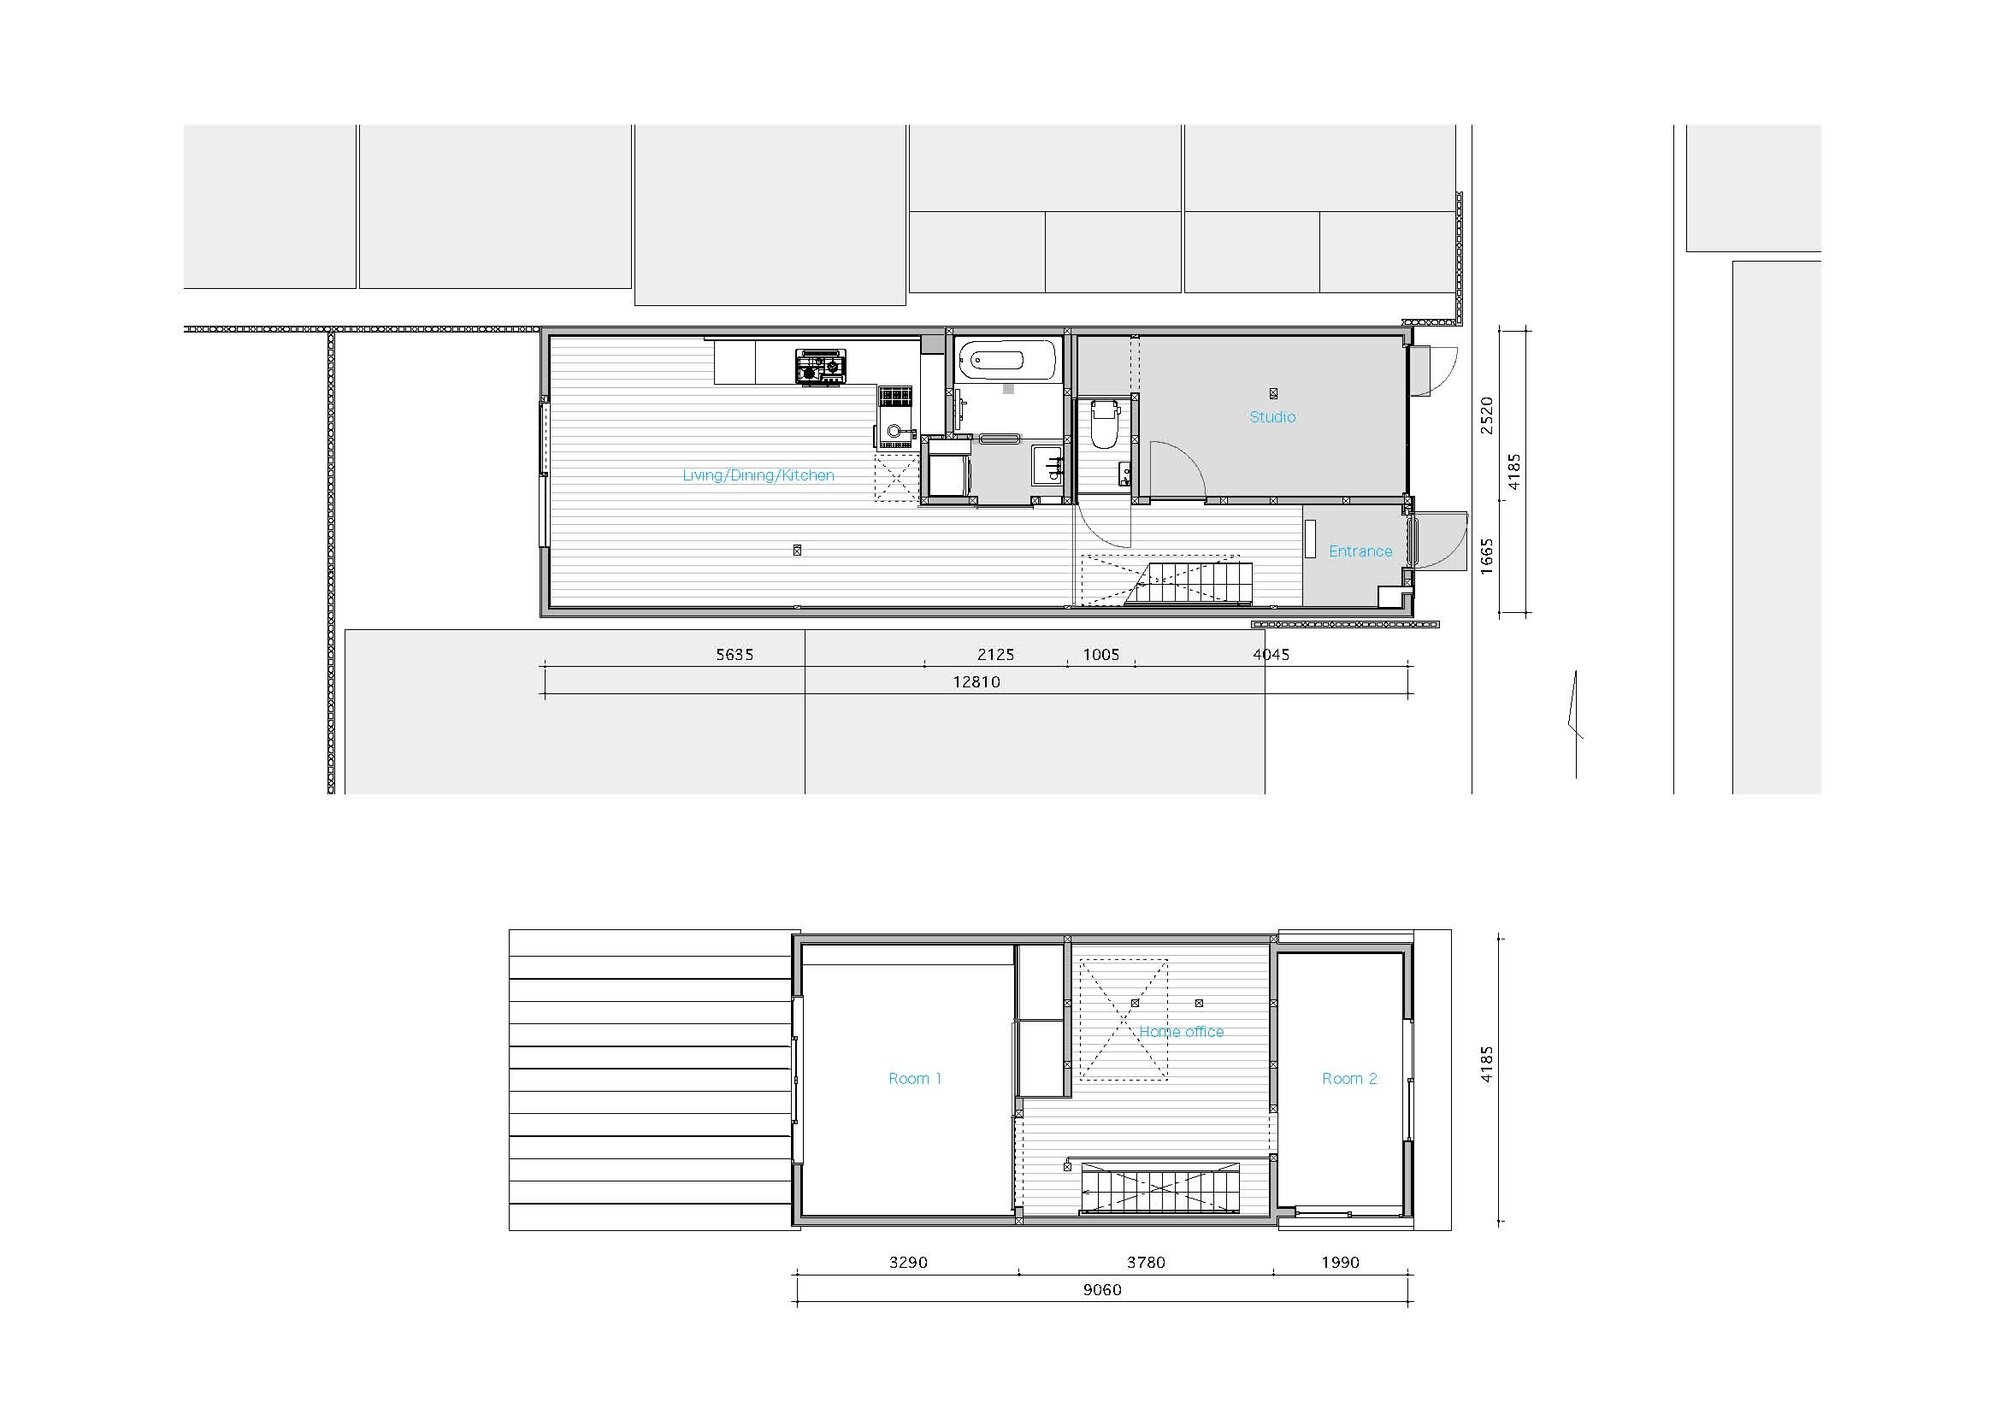 House in Shichiku - Shimpei Oda Architect's Office - Small House - Floor Plans - Humble Homes